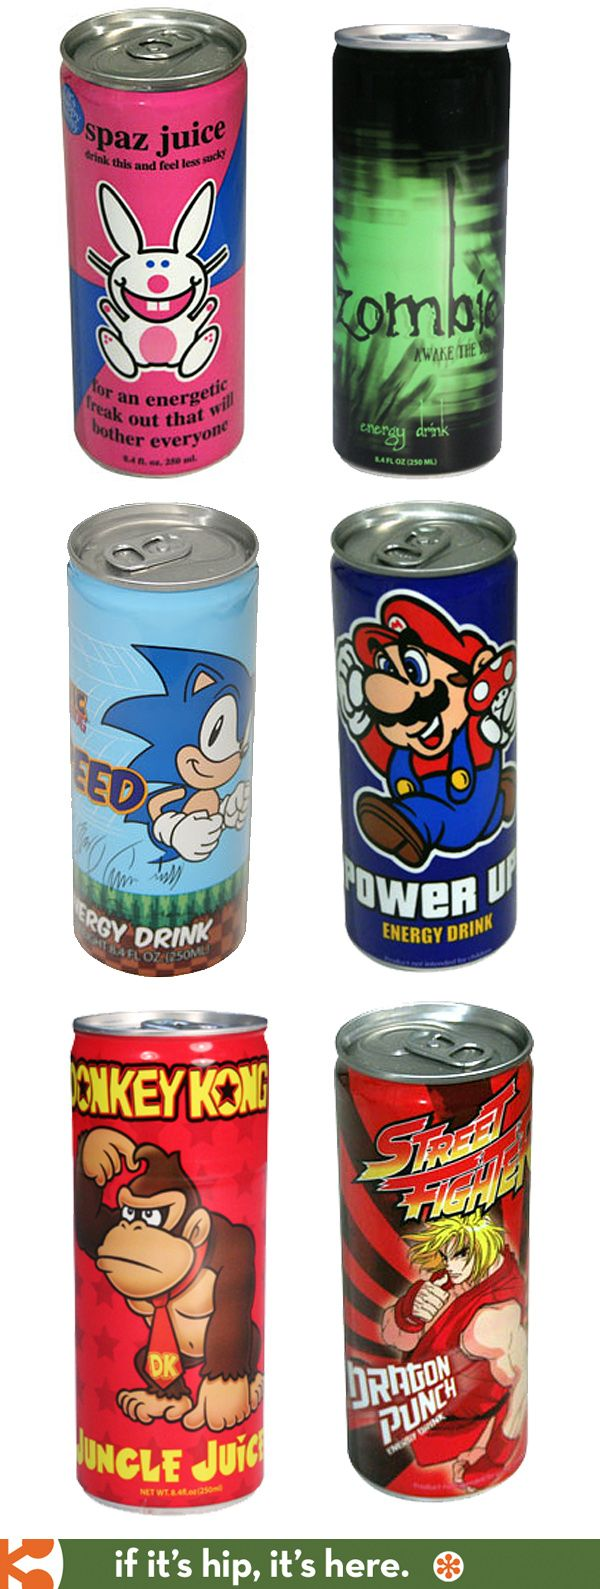 Fun canned Energy Drinks featuring video game characters and pop culture icons from Asia.